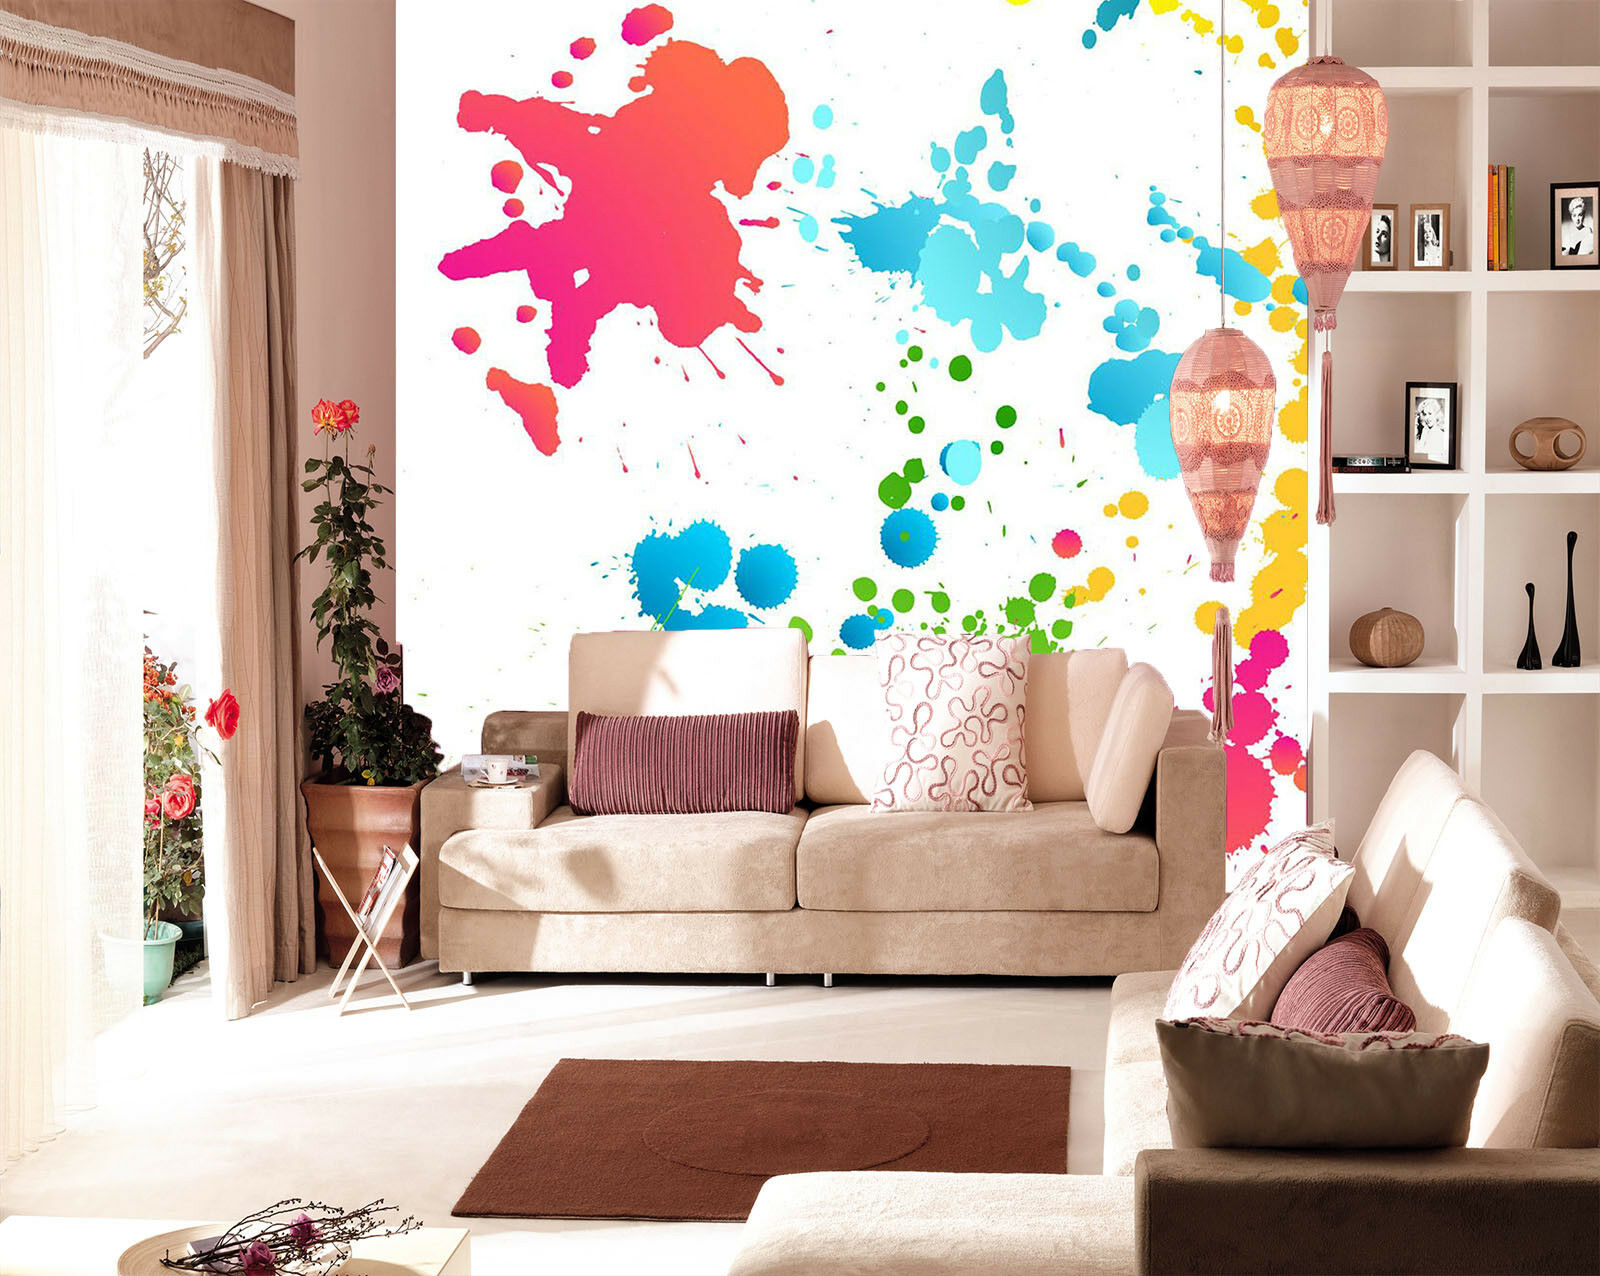 3D Farbe Ink Paint 534 Wall Paper Wall Print Decal Wall Deco Indoor Mural Carly